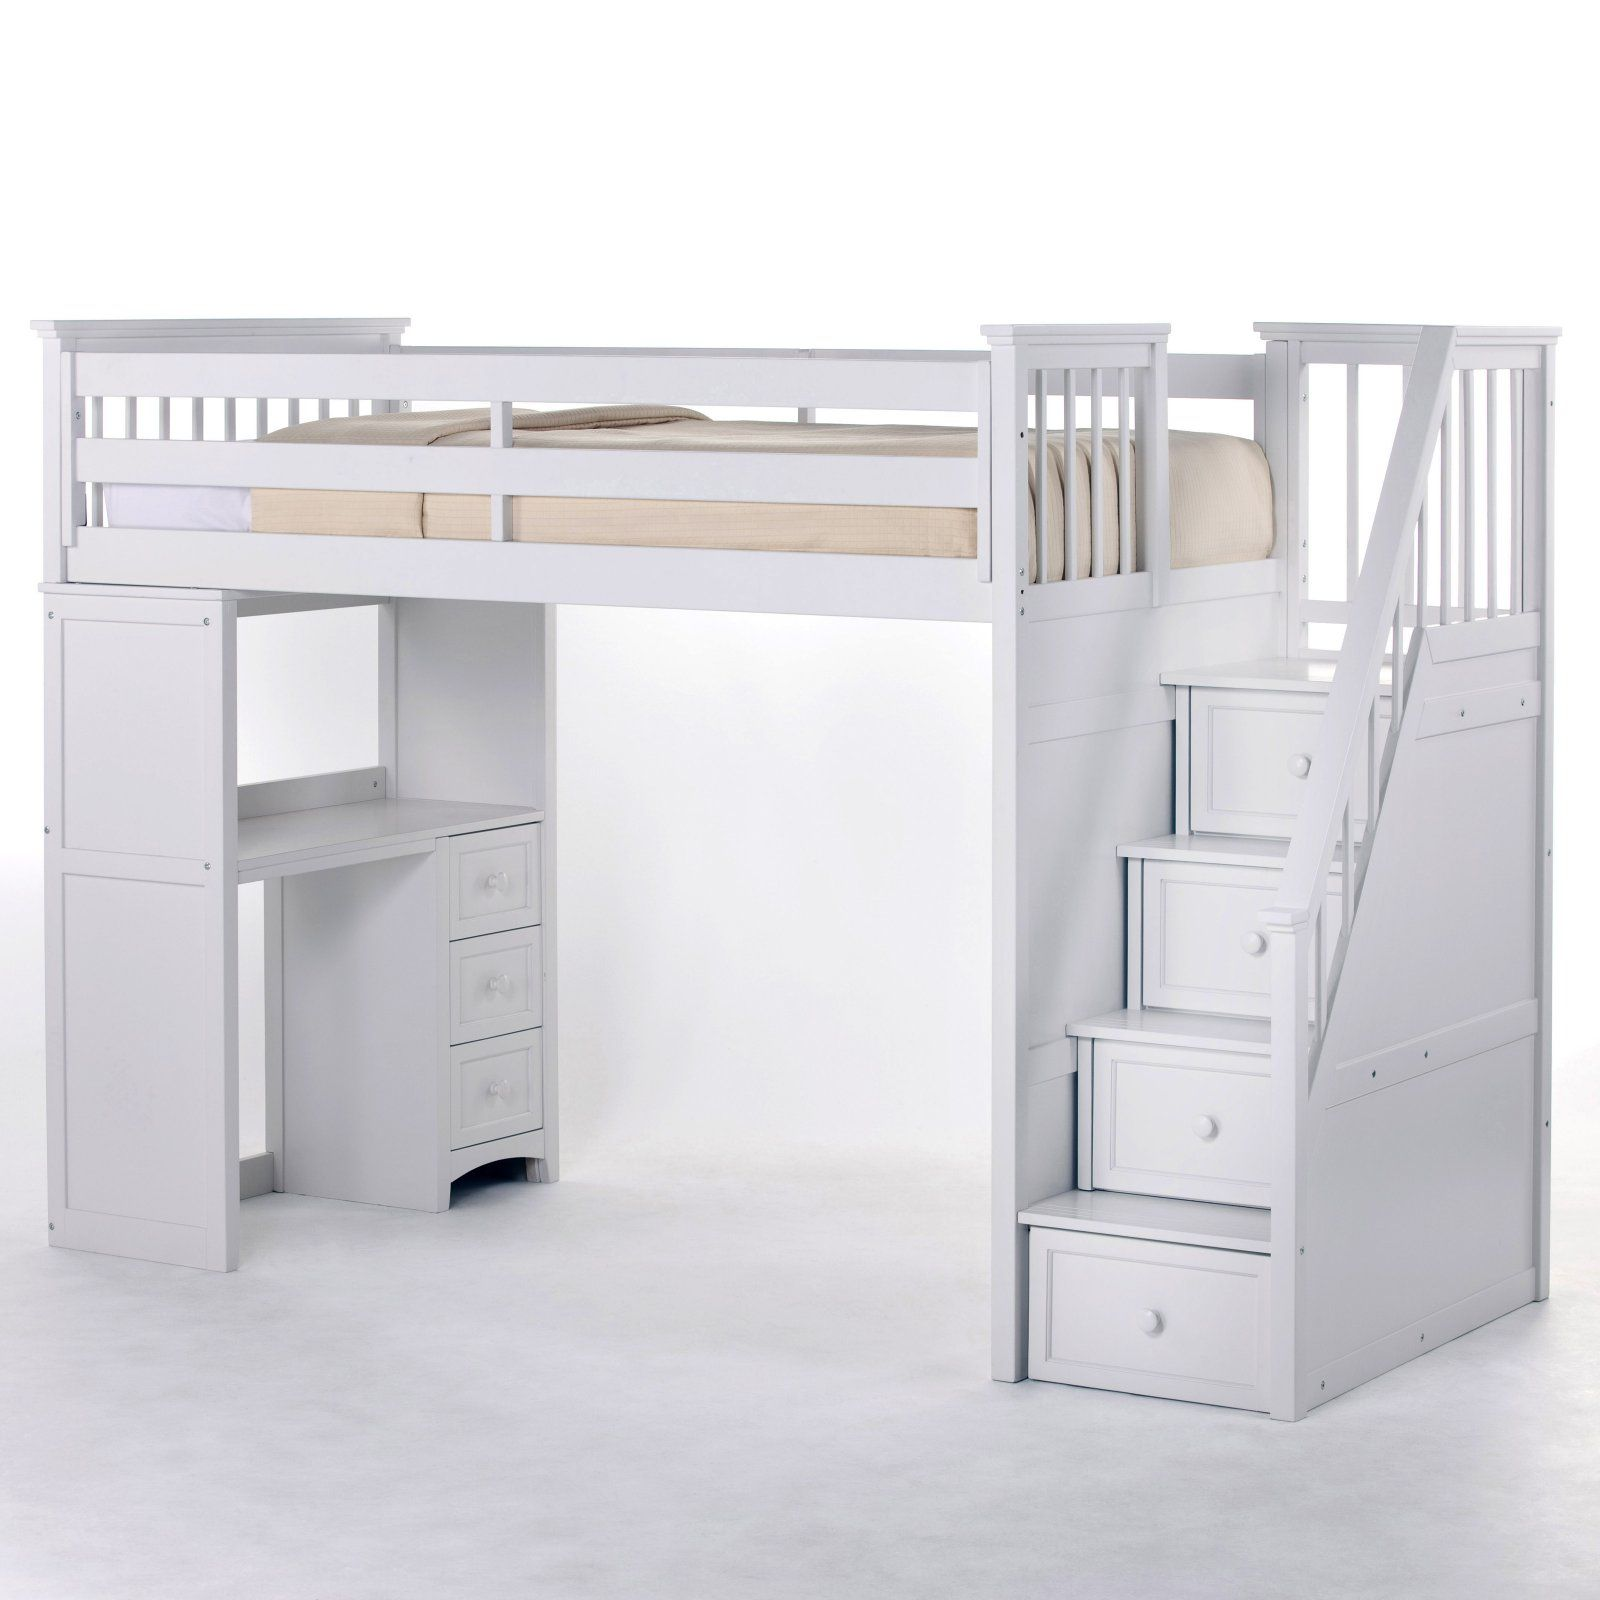 Pottery barn loft bed with desk  Schoolhouse Stairway Loft Bed  White  Loft Beds at Simply Bunk